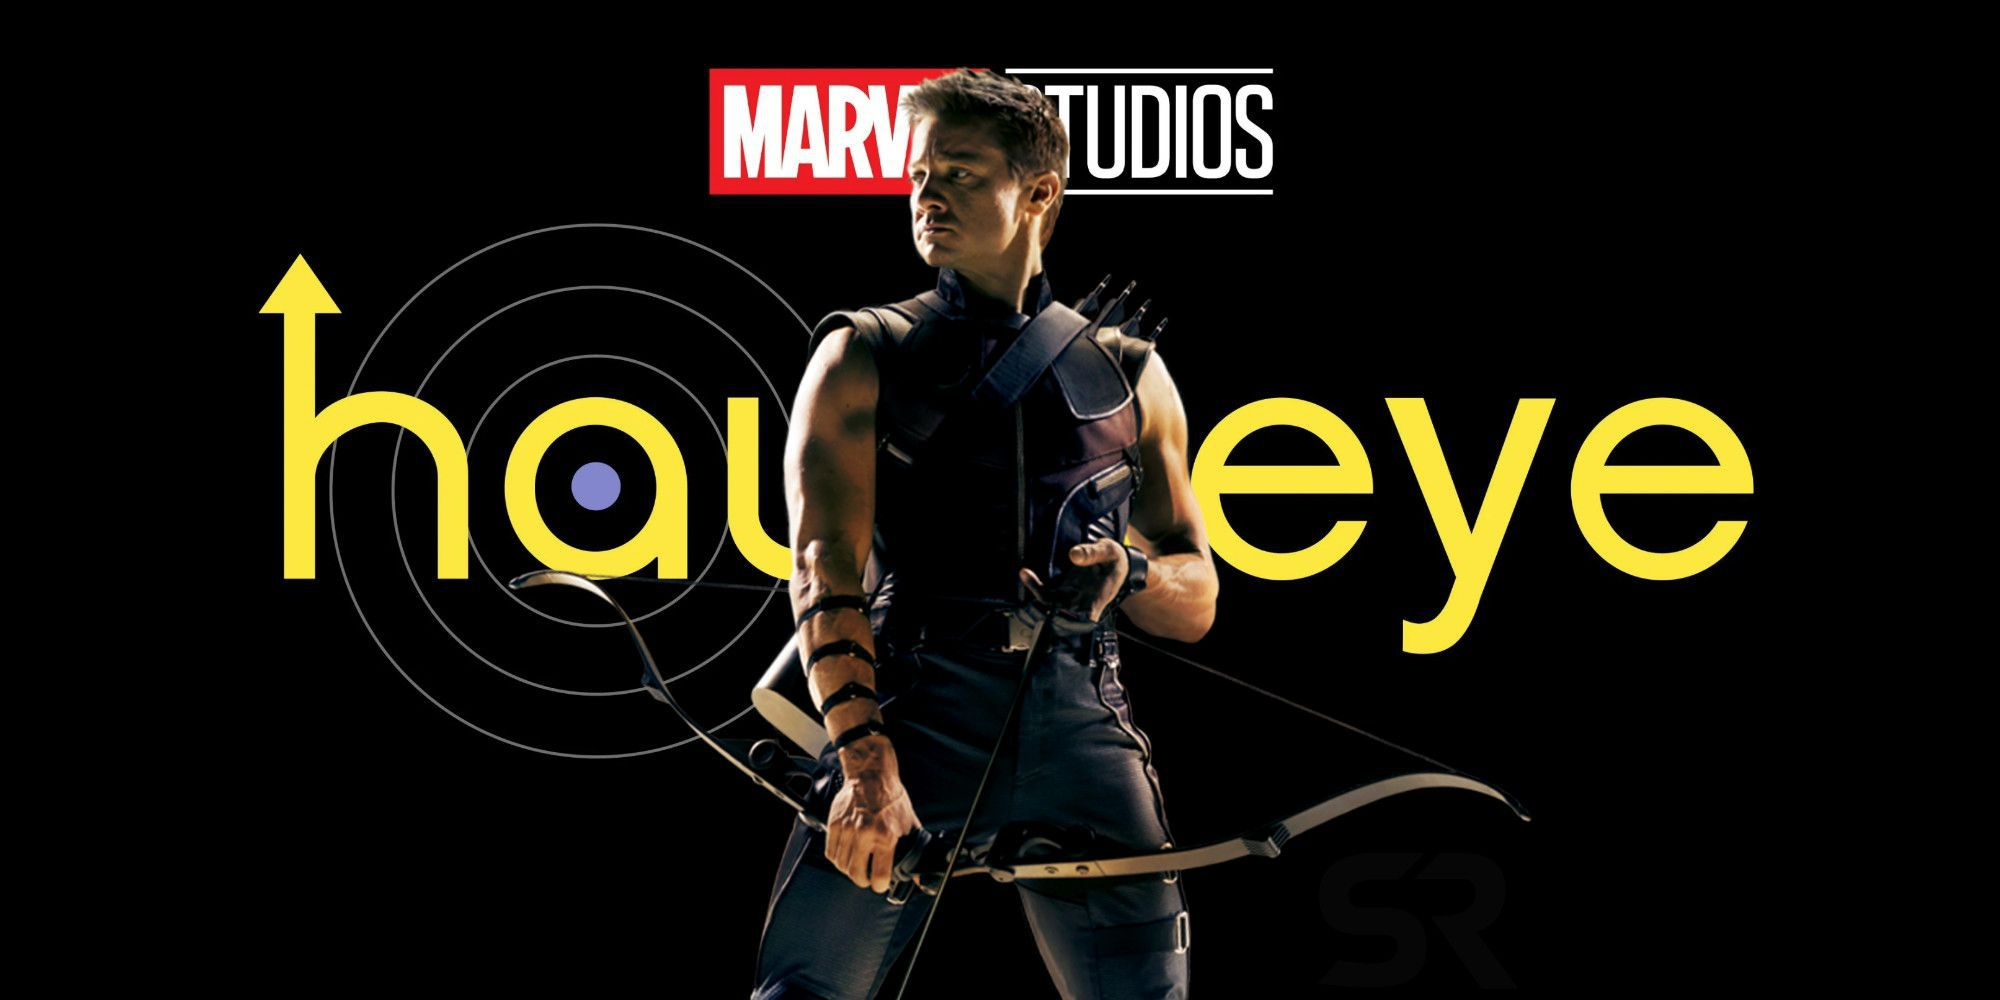 The full cast of Hawkeye, the Marvel series revealed - moviegoers